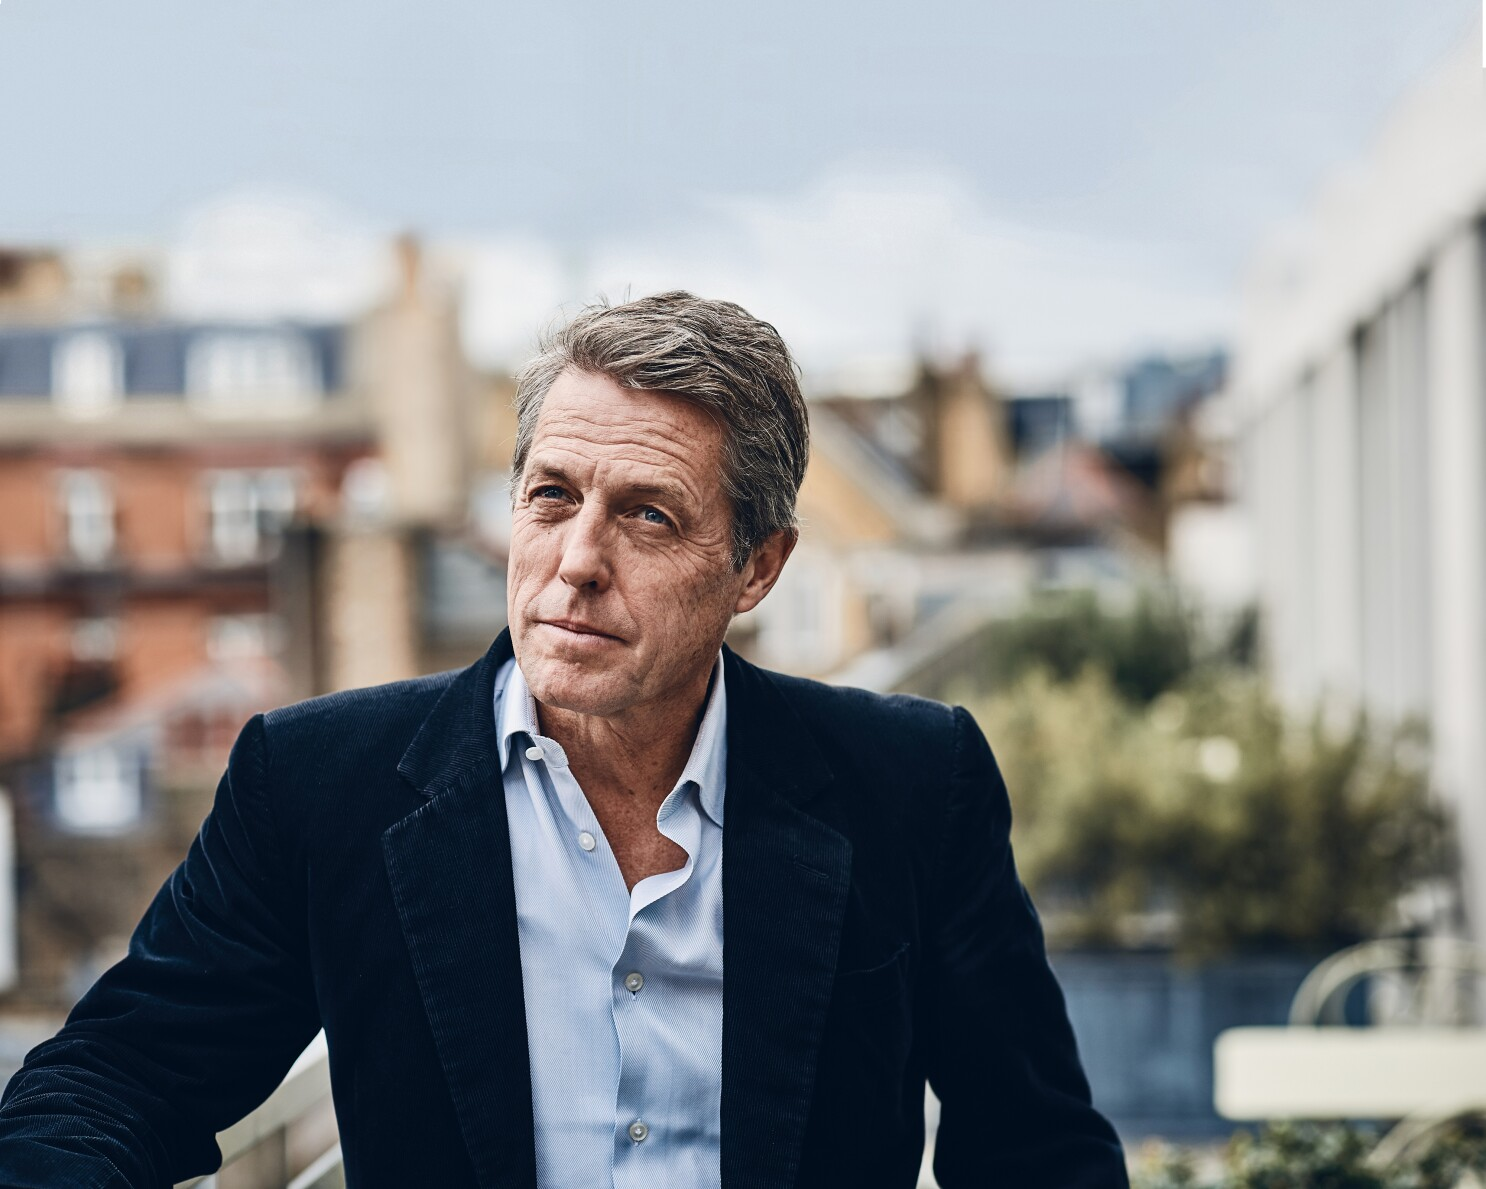 Hugh Grant on the 'big fuss' he made before 'The Undoing' - Los Angeles  Times